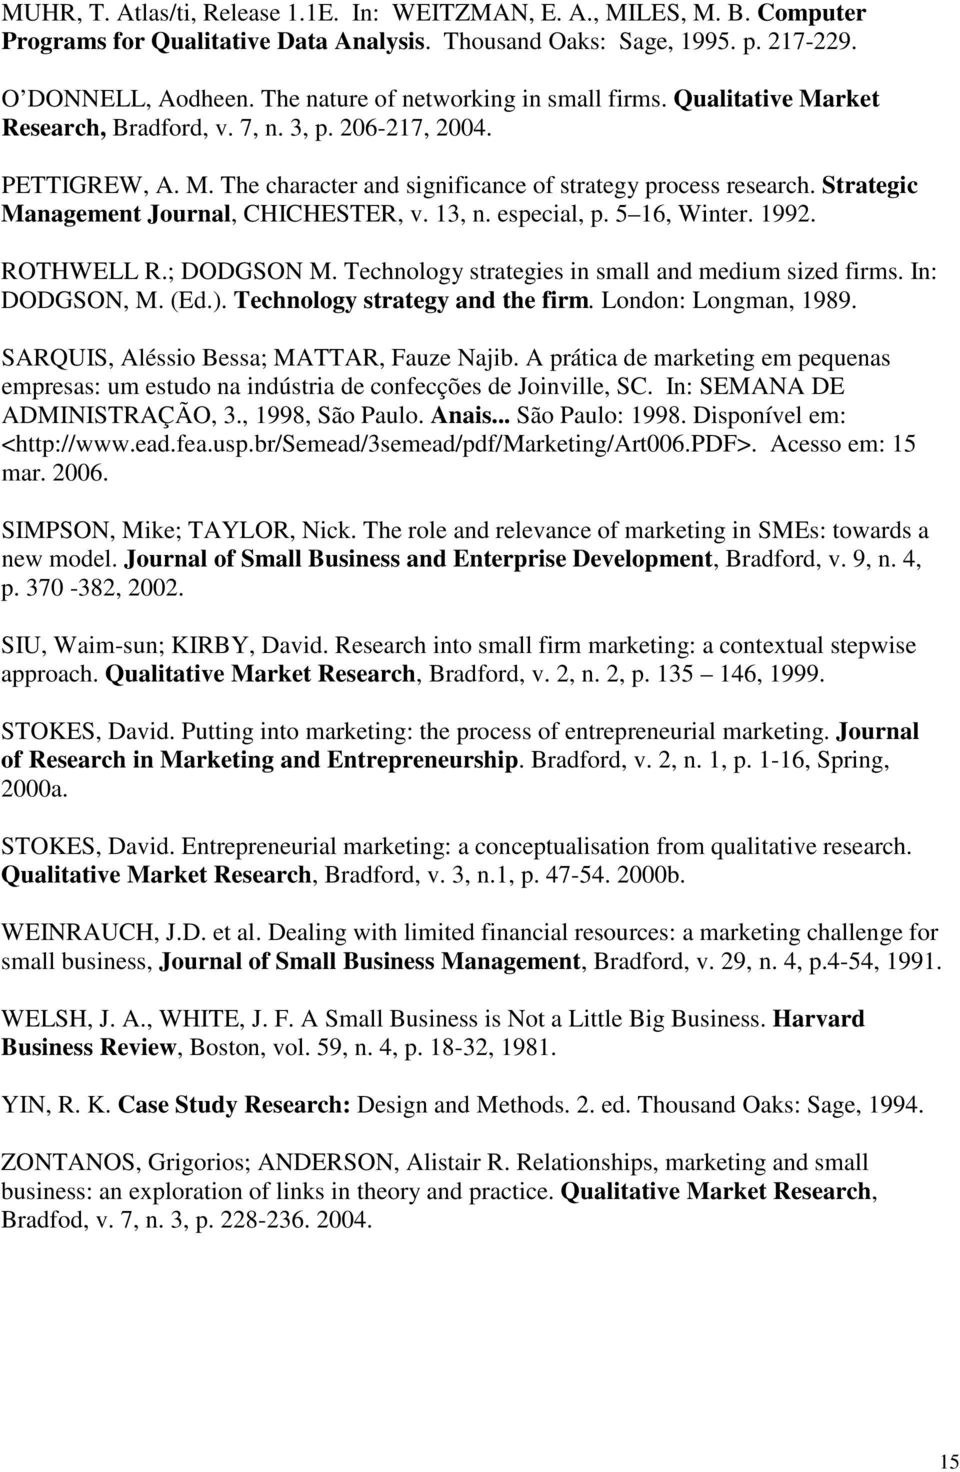 Strategic Management Journal, CHICHESTER, v. 13, n. especial, p. 5 16, Winter. 1992. ROTHWELL R.; DODGSON M. Technology strategies in small and medium sized firms. In: DODGSON, M. (Ed.).